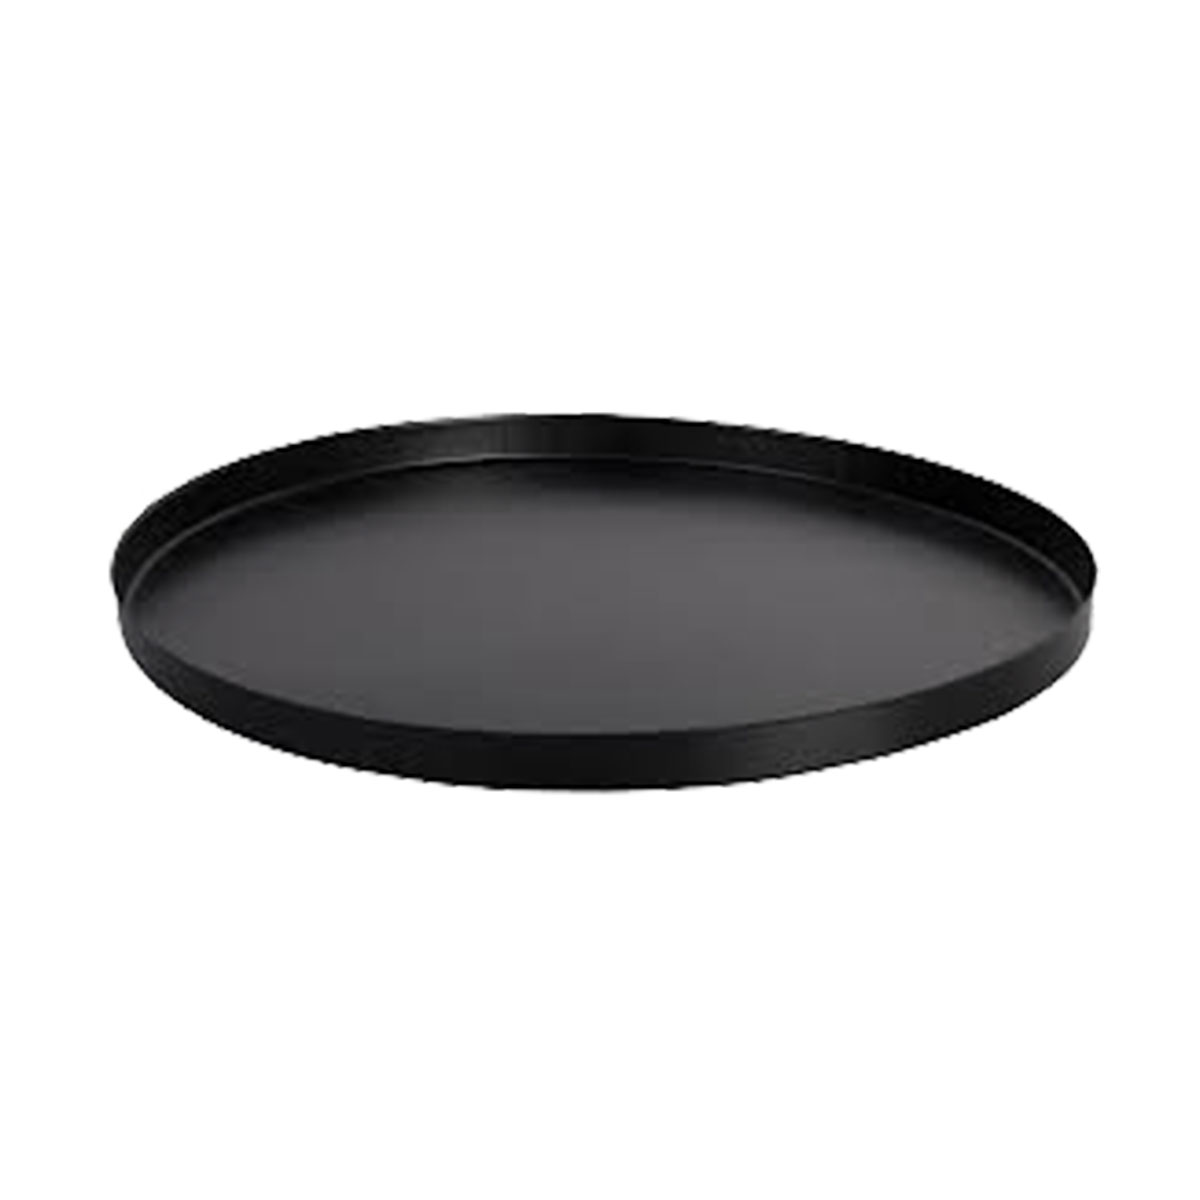 BONFEU Base Plate Black Round 50